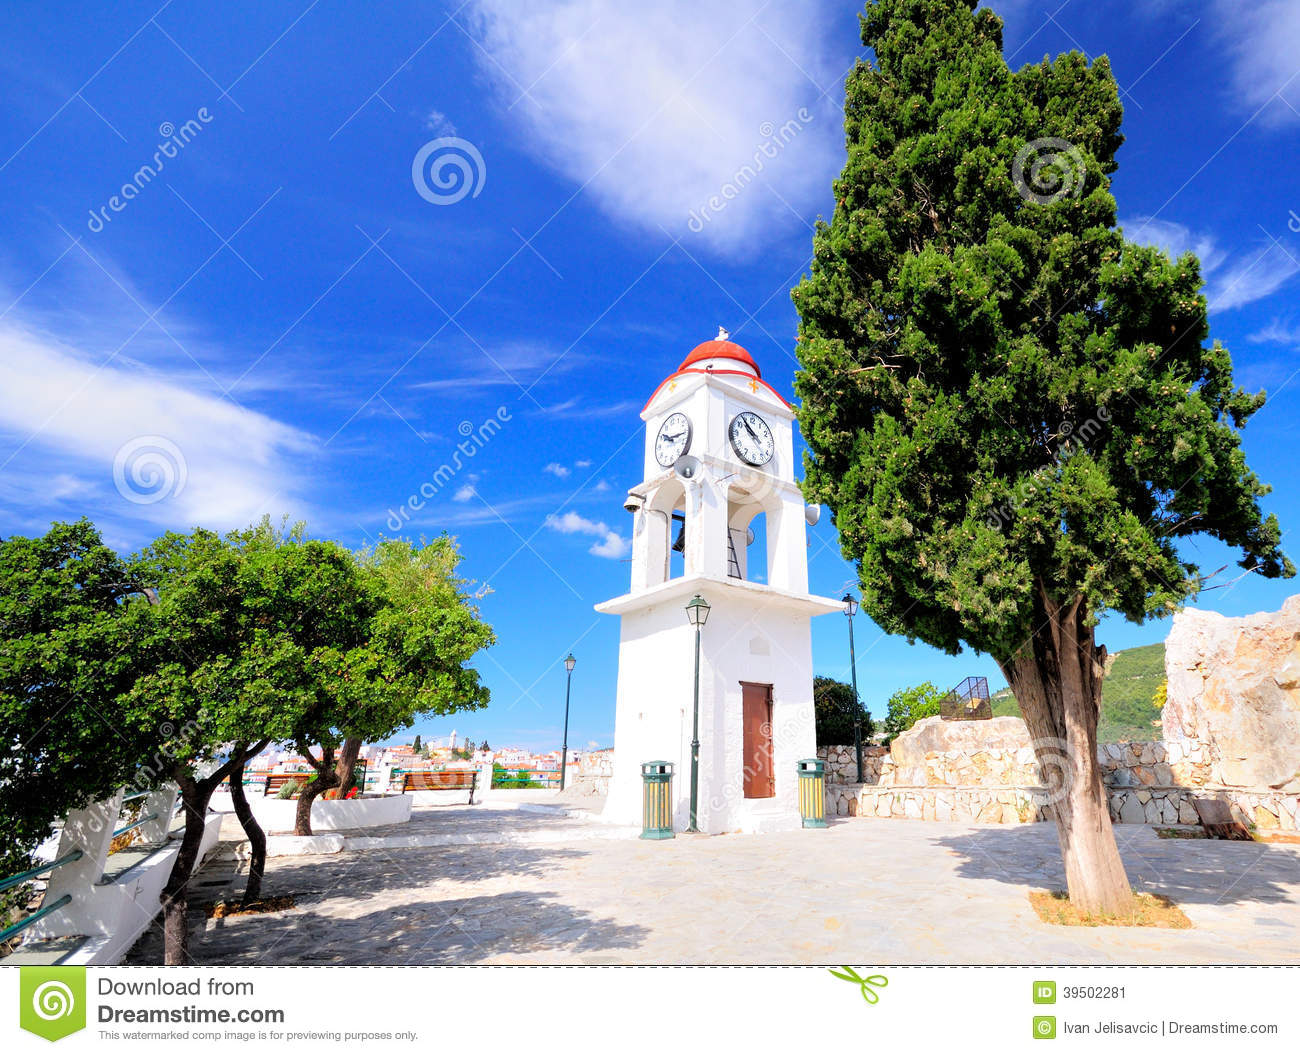 Clock tower in Skiathos, Greece against the blue sky